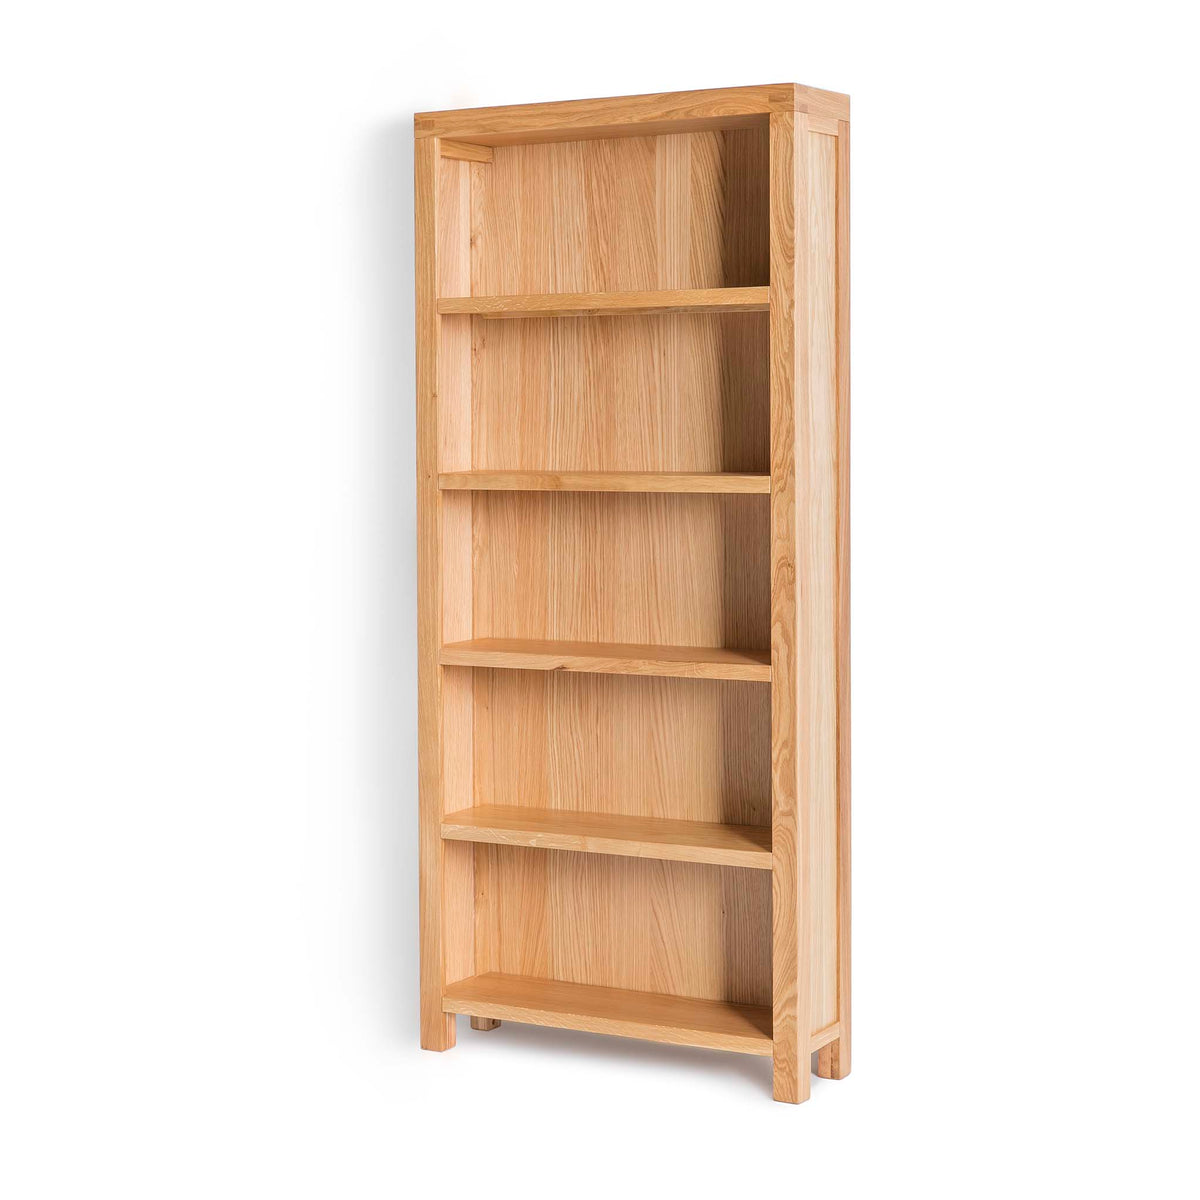 Abbey Light Oak Large Bookcase - Side view